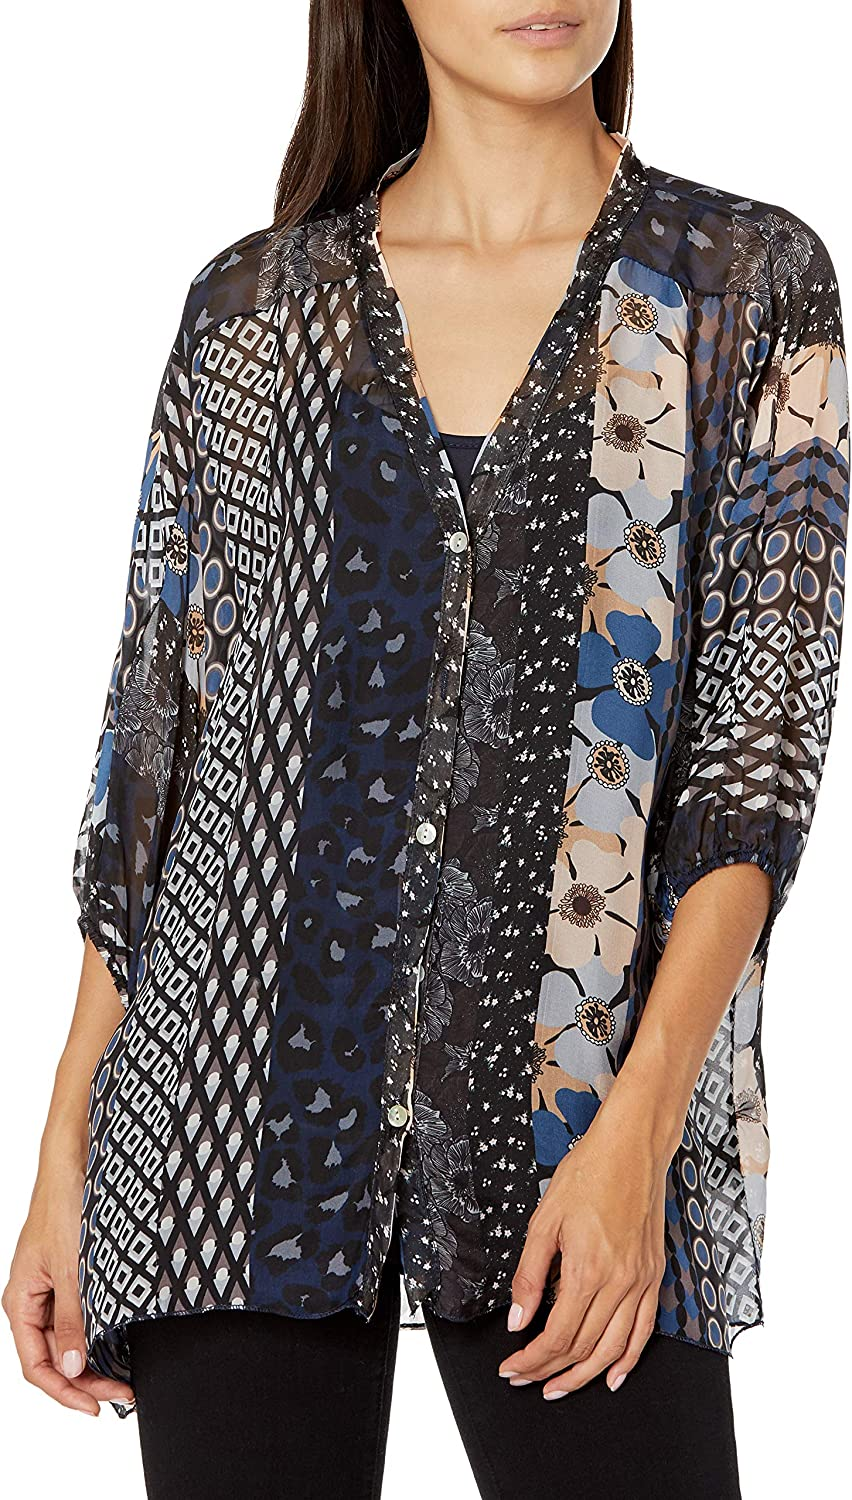 M Made in Italy Women's V-Neck Mix Print Button Down Shirt